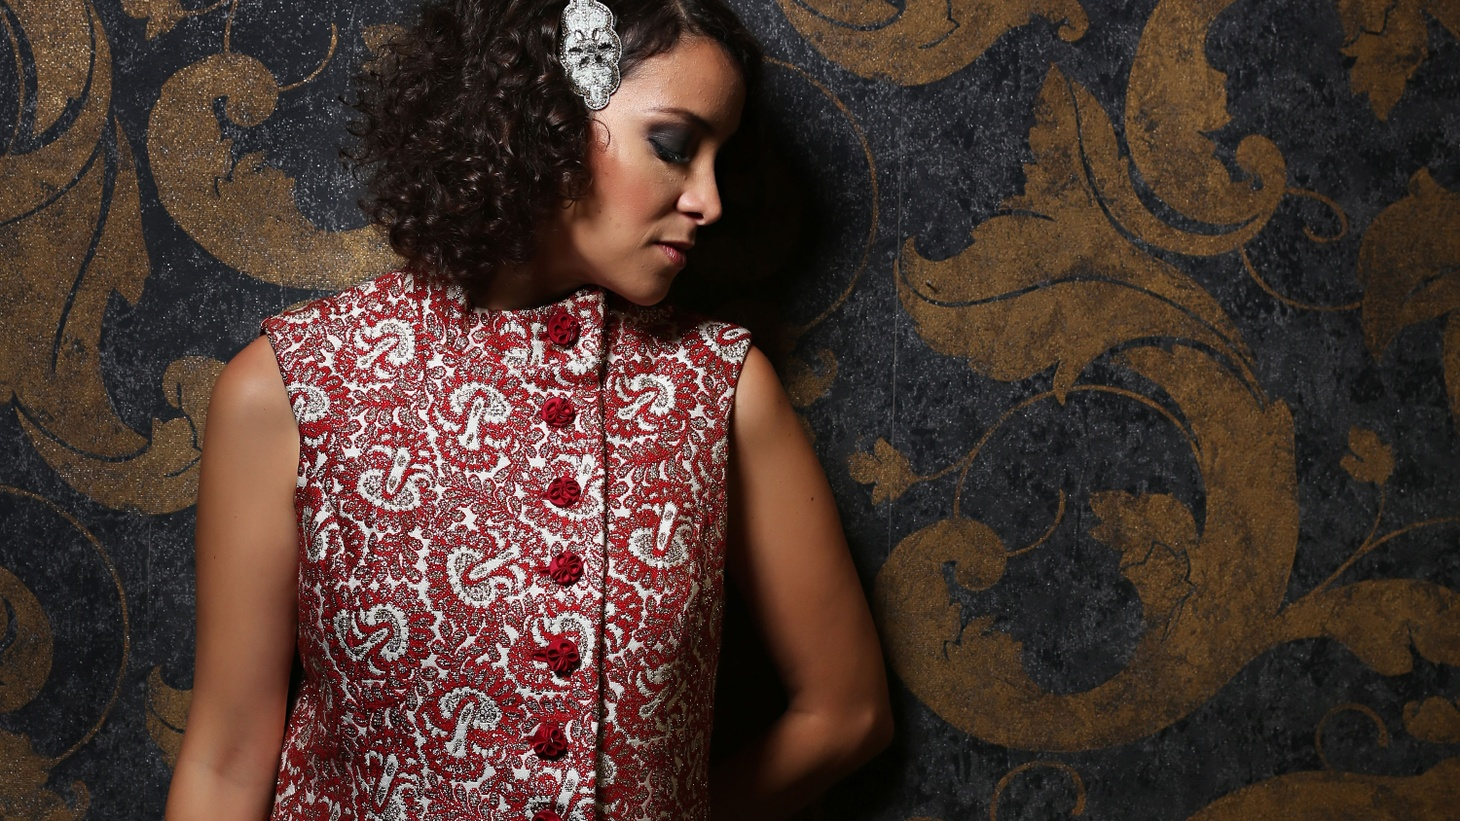 Latin Grammy winner Gaby Moreno recalls spending Christmas as a child with a collection of songs from her homeland of Guatemala.